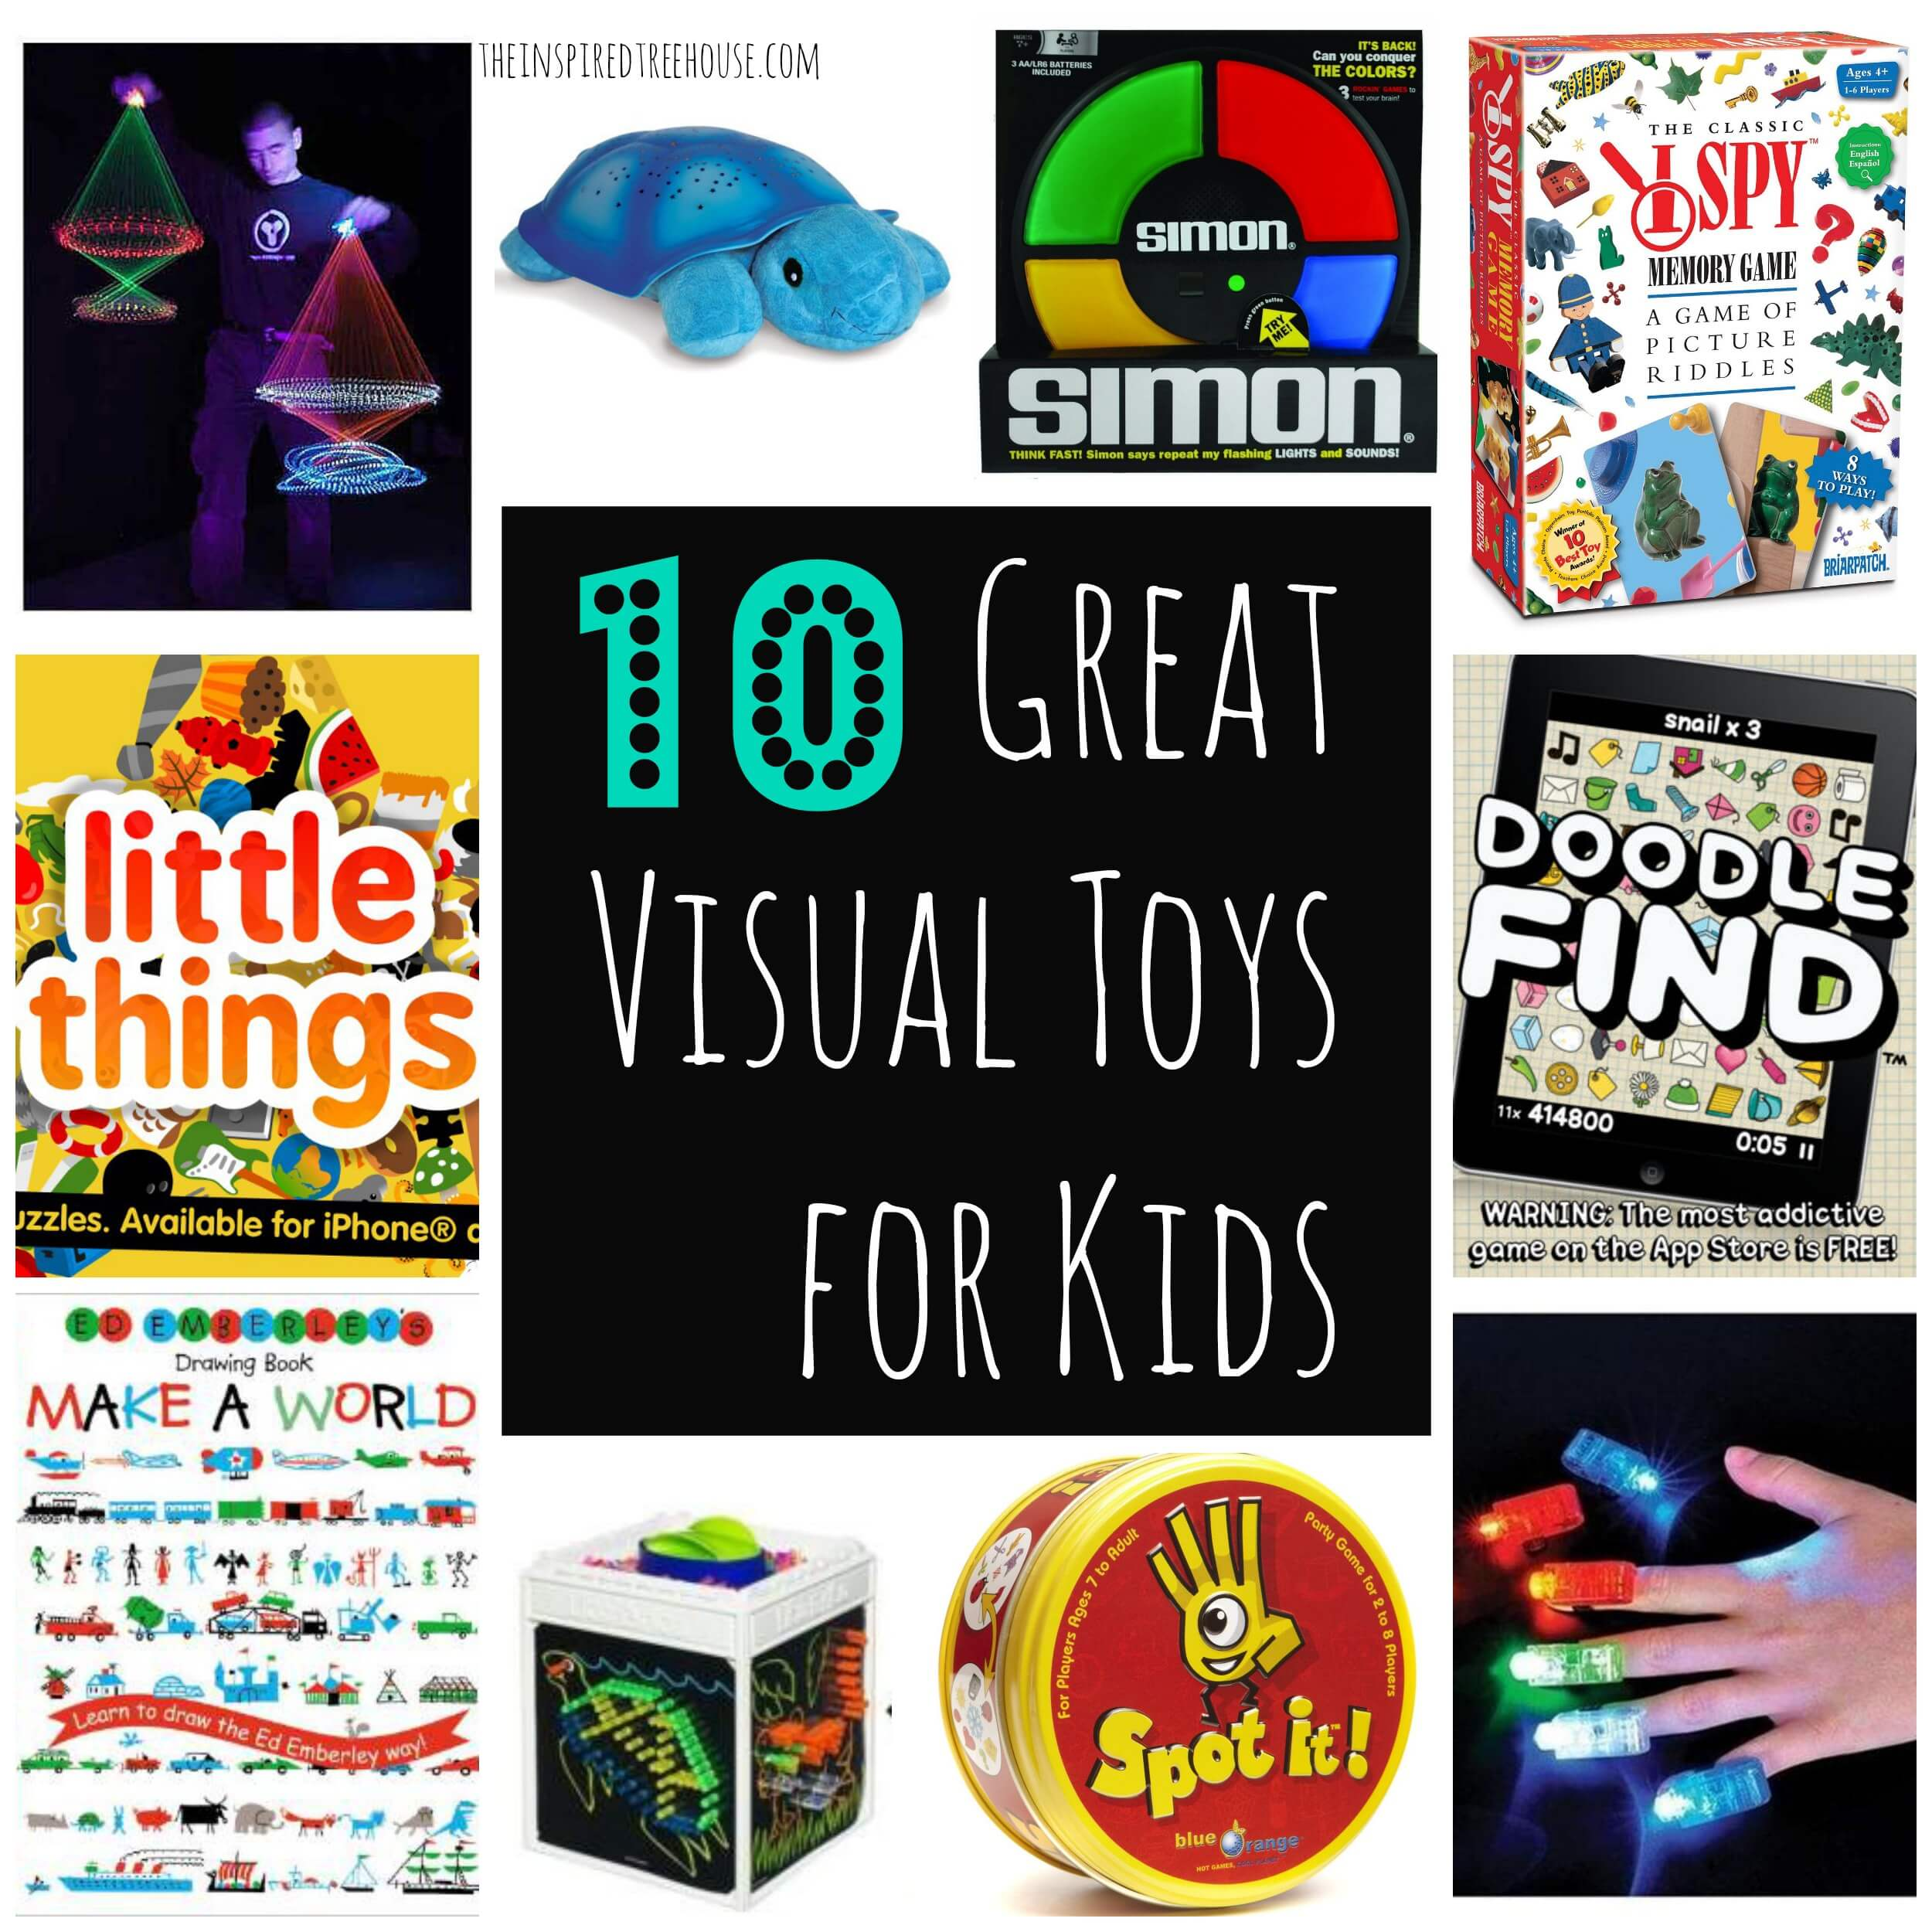 SENSORY PROCESSING 10 GREAT VISUAL TOYS FOR KIDS The Inspired